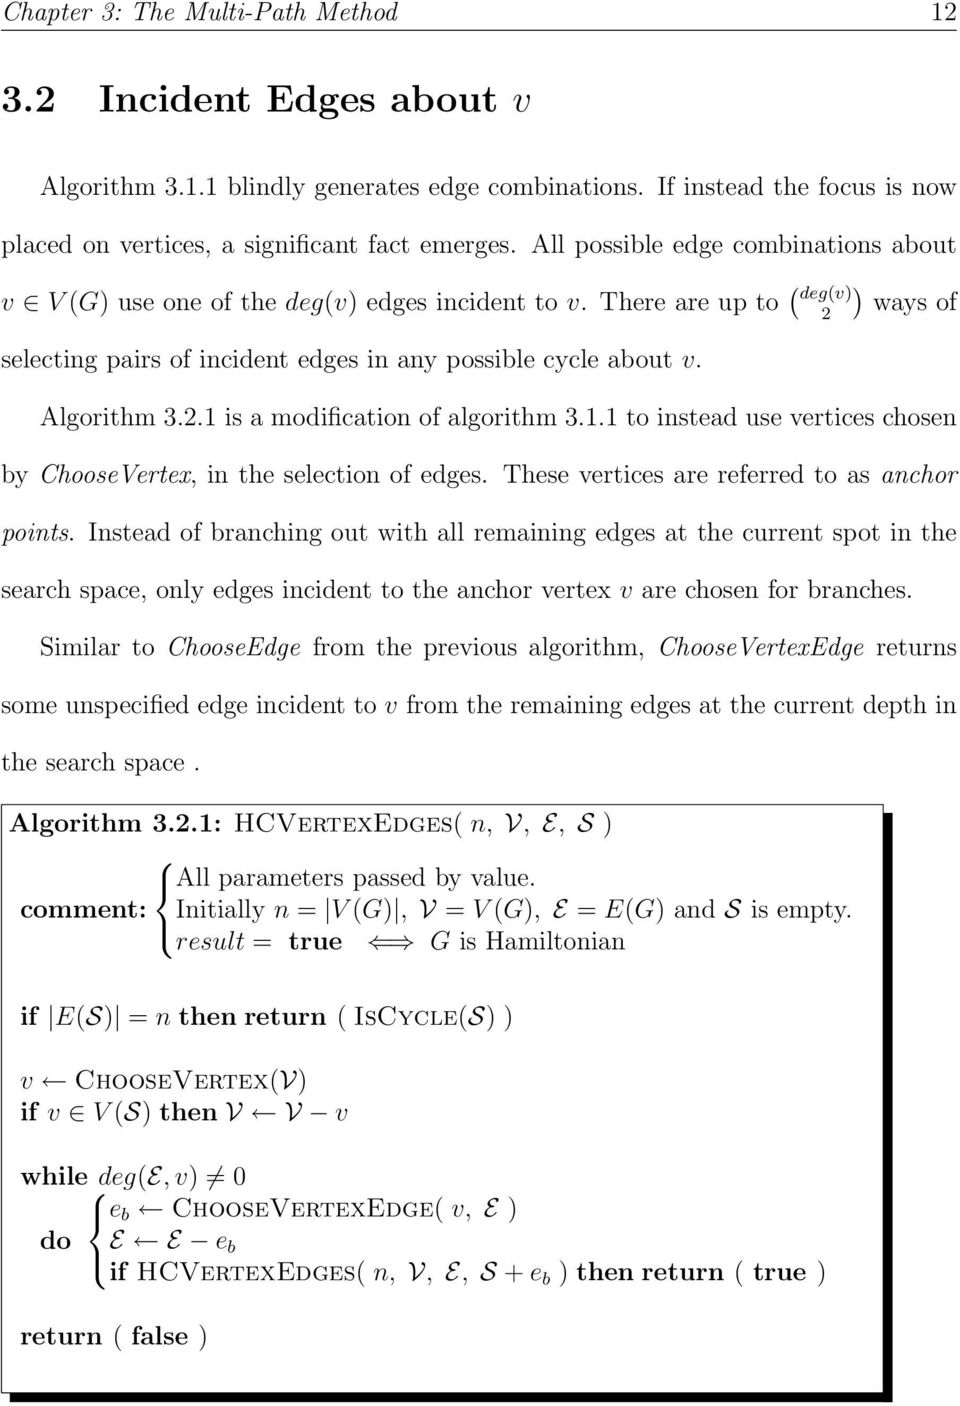 Algorithm 3.2.1 is a modification of algorithm 3.1.1 to instead use vertices chosen by ChooseVertex, in the selection of edges. These vertices are referred to as anchor points.